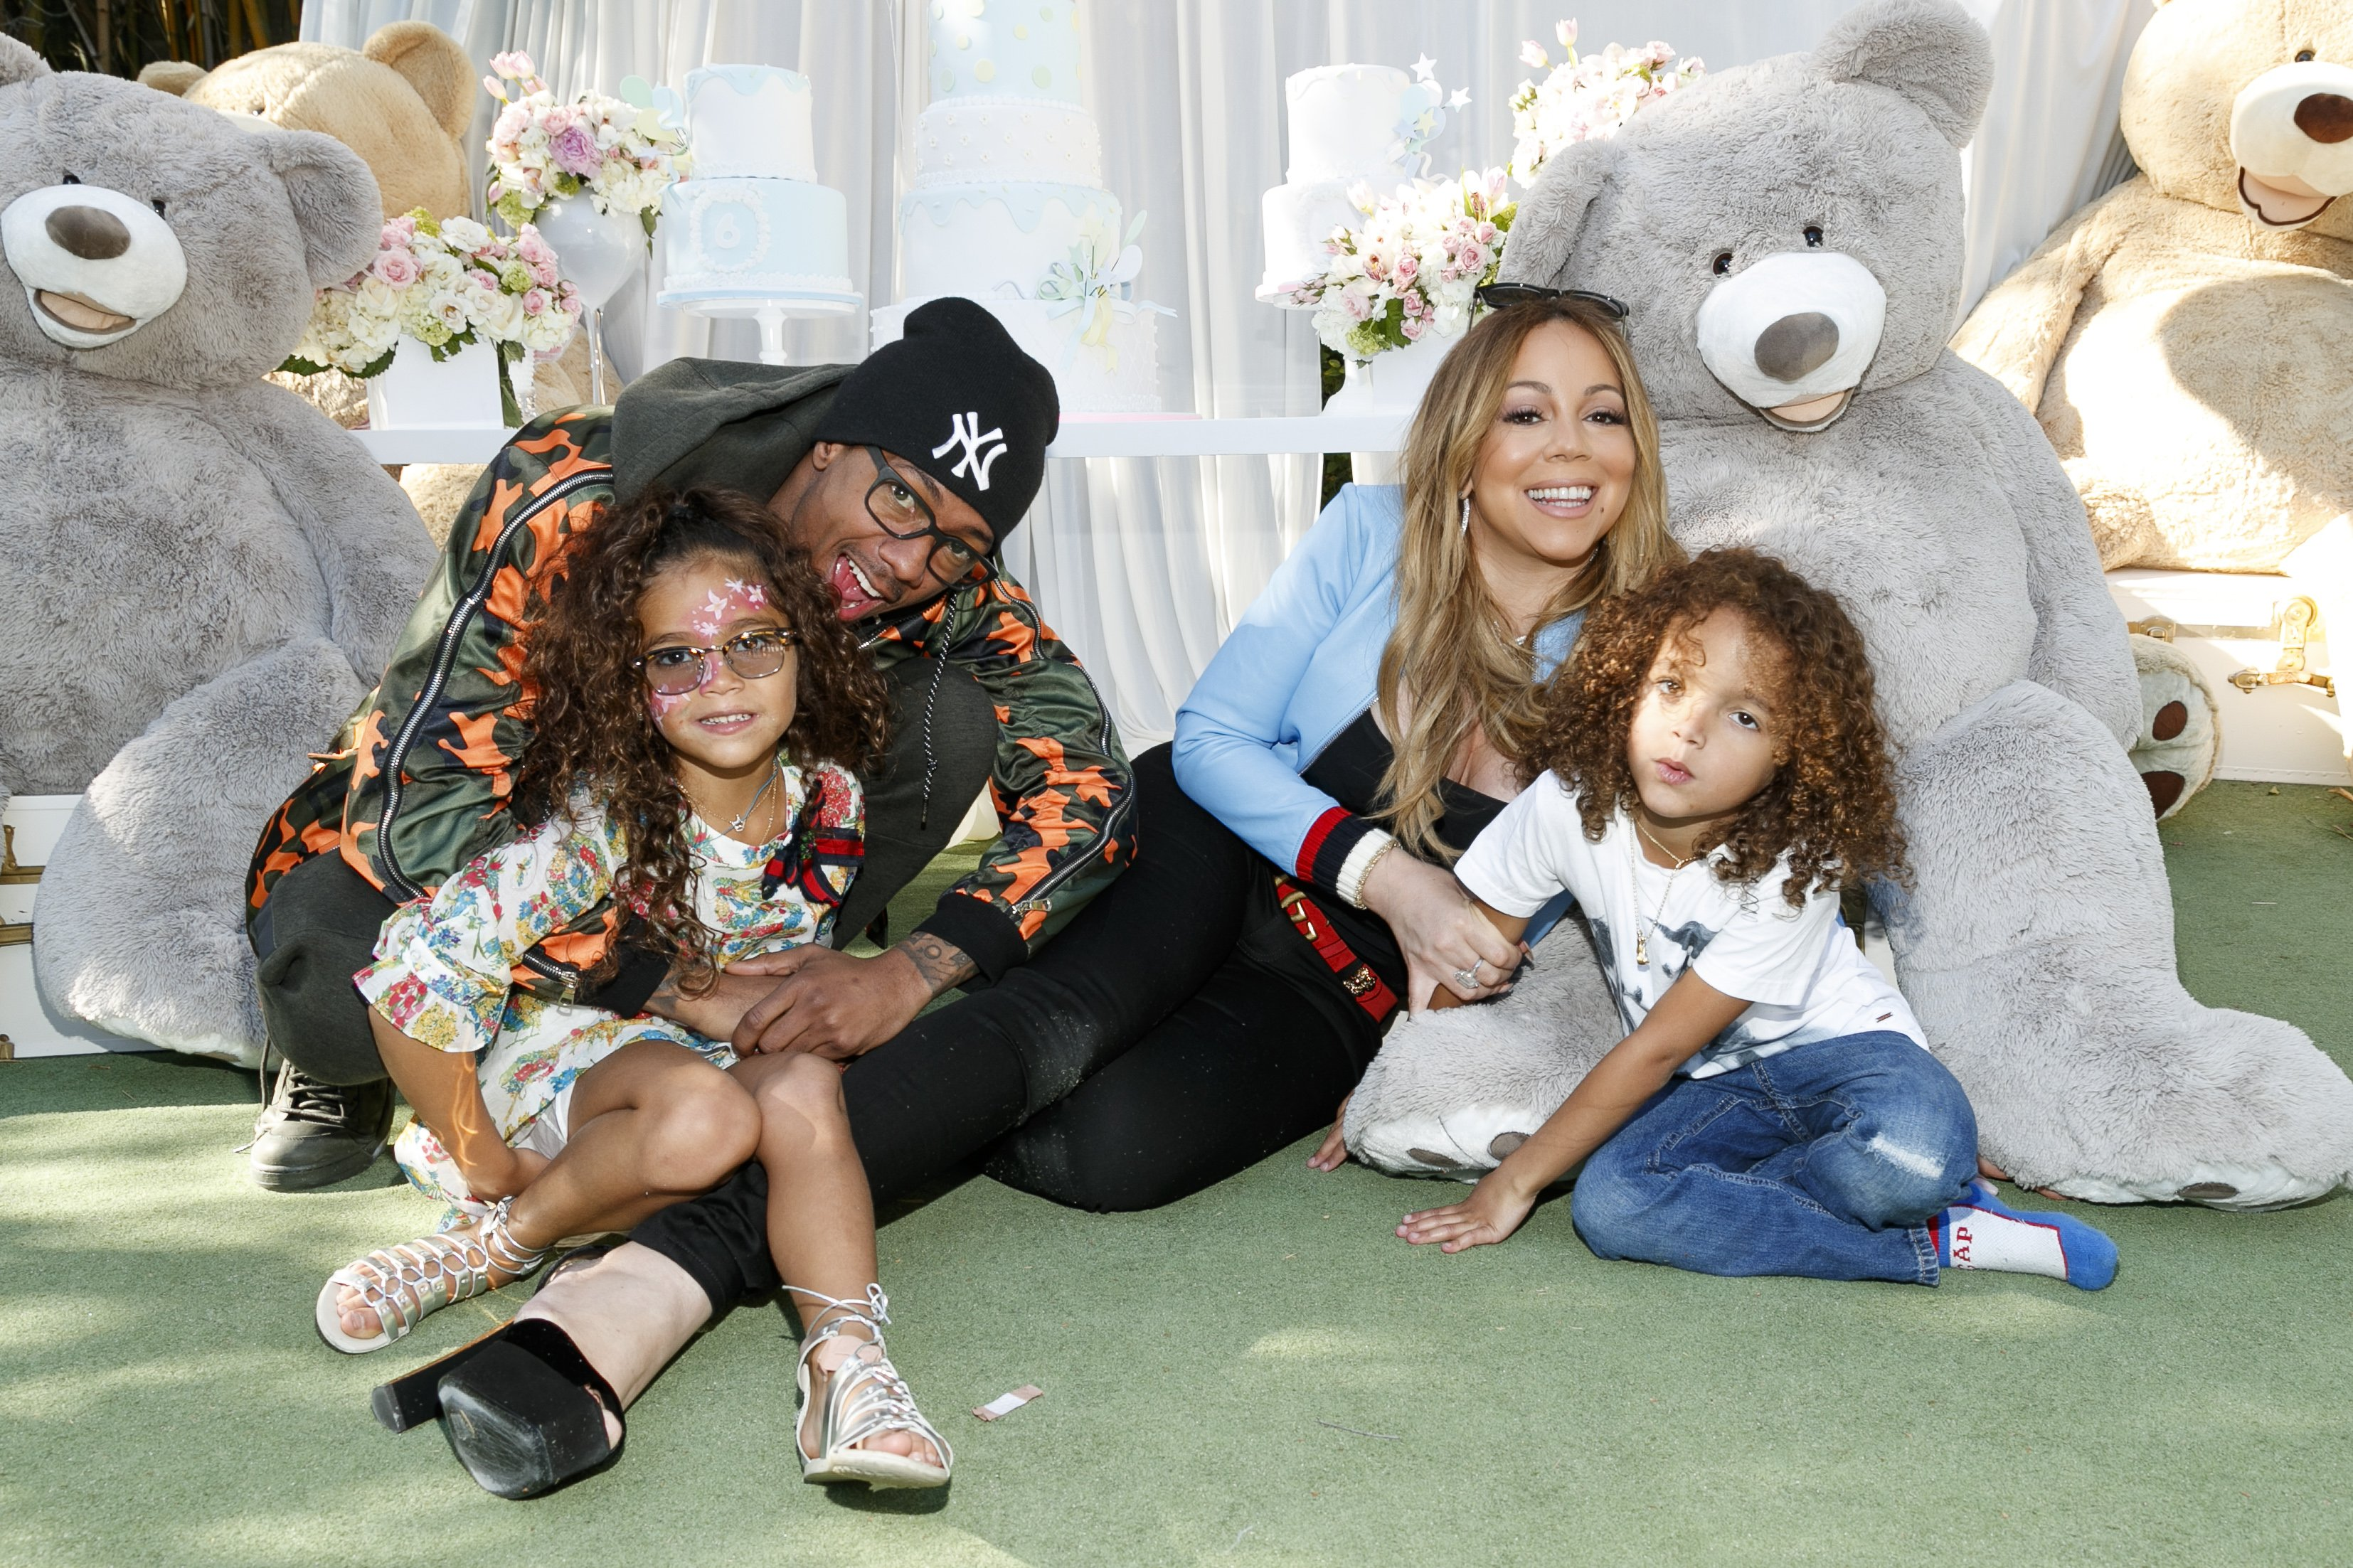 Mariah Carey and Nick Cannon celebrate Monroe and Moroccan's birthday on May 13, 2017, in Los Angeles, California. | Source: Getty Images